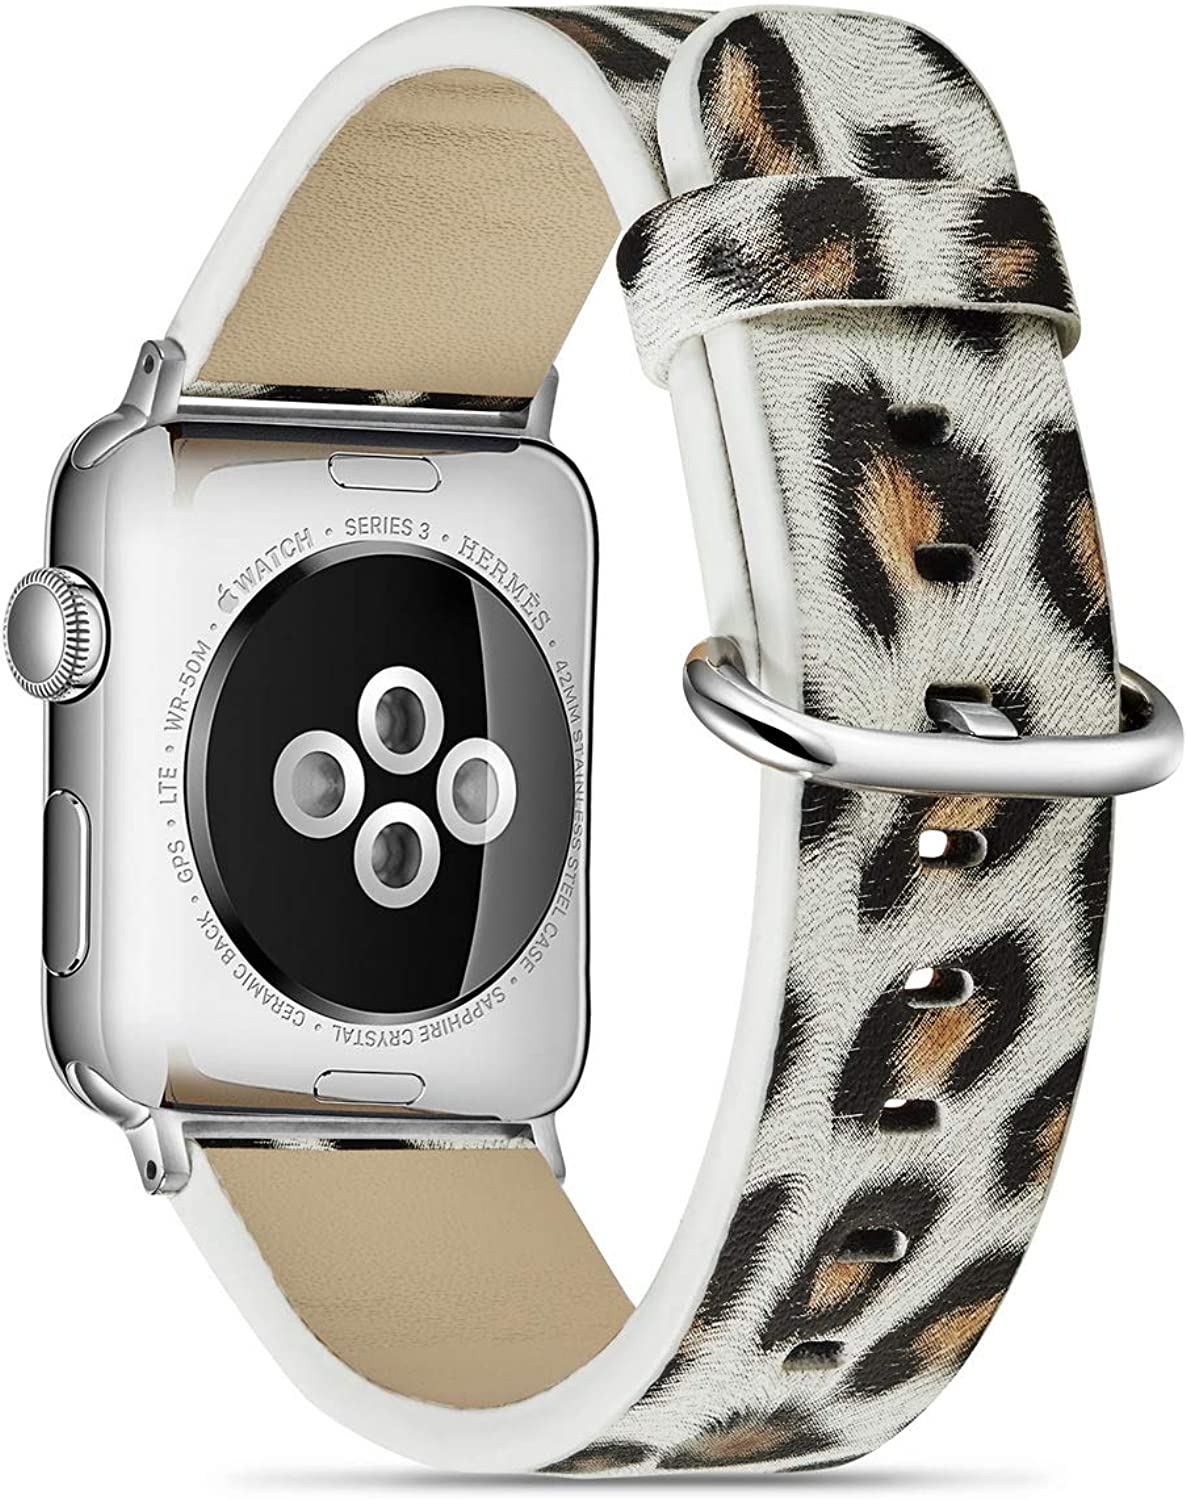 MeShow 44mm 42mm Soft Leather Leopard Style Watch Band Strap Wrist Band with Silver Metal Adapter Replacement for Apple Watch Series 5/4/3/2/1(Not for iWatch 40mm/38mm)